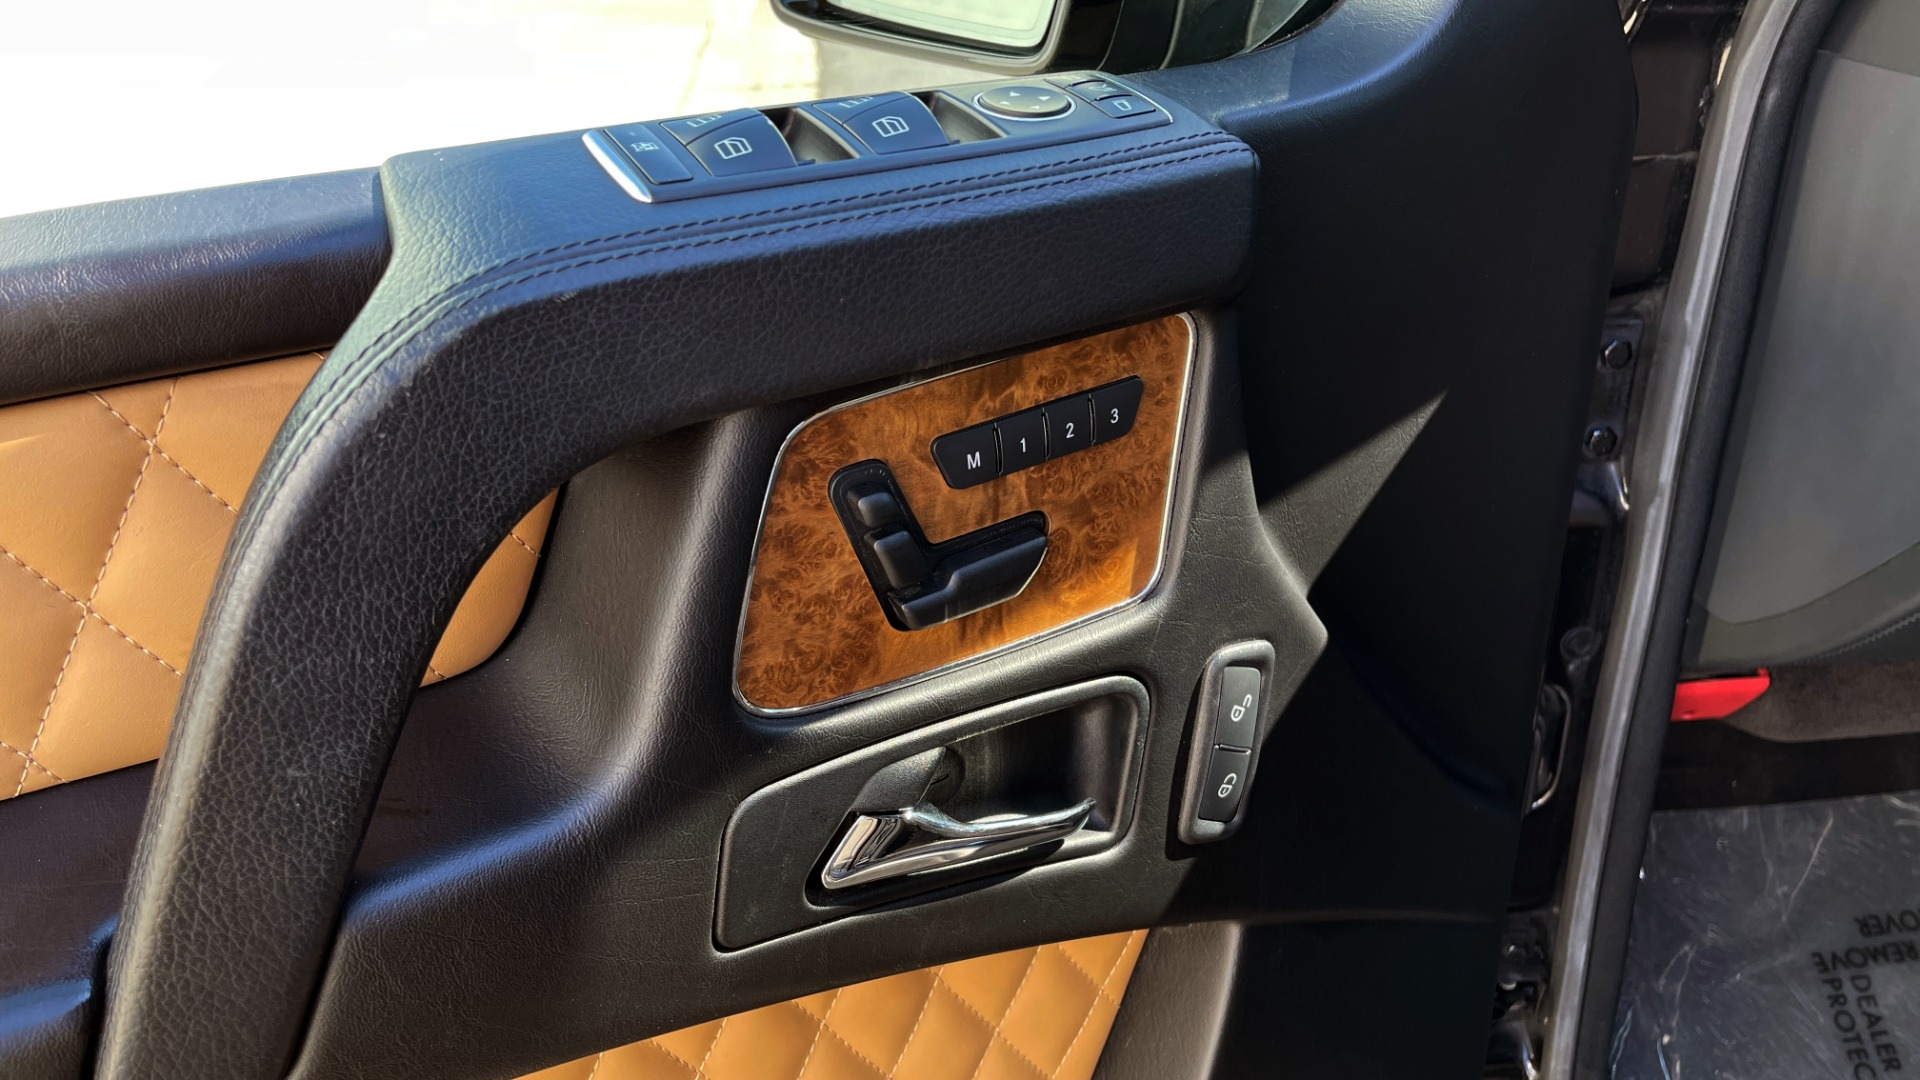 Used 2014 Mercedes-Benz G-CLASS G 63 AMG / DISGNO LEATHER / NAV / SUNROOF / REARVIEW for sale $88,999 at Formula Imports in Charlotte NC 28227 24